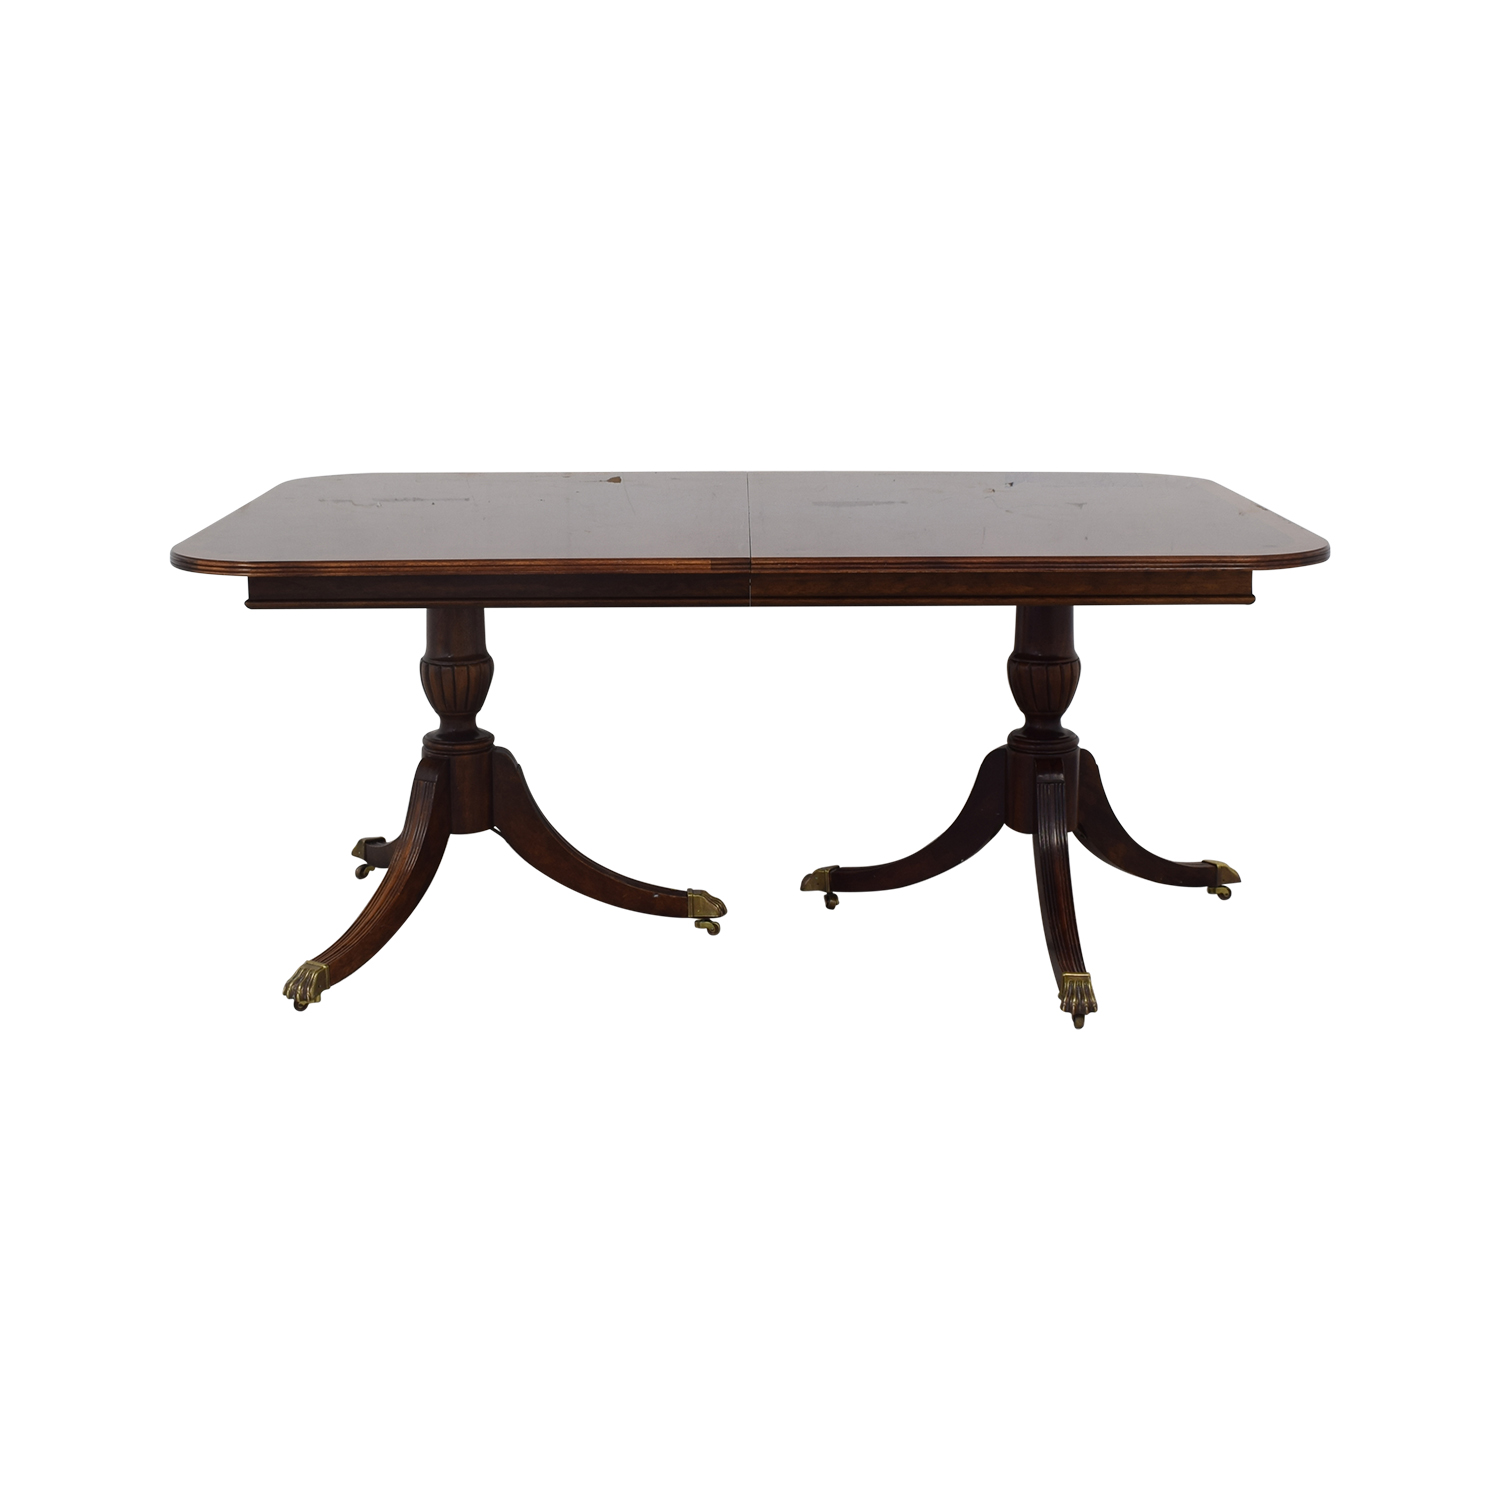 Thomasville Extendable Dining Table / Dinner Tables